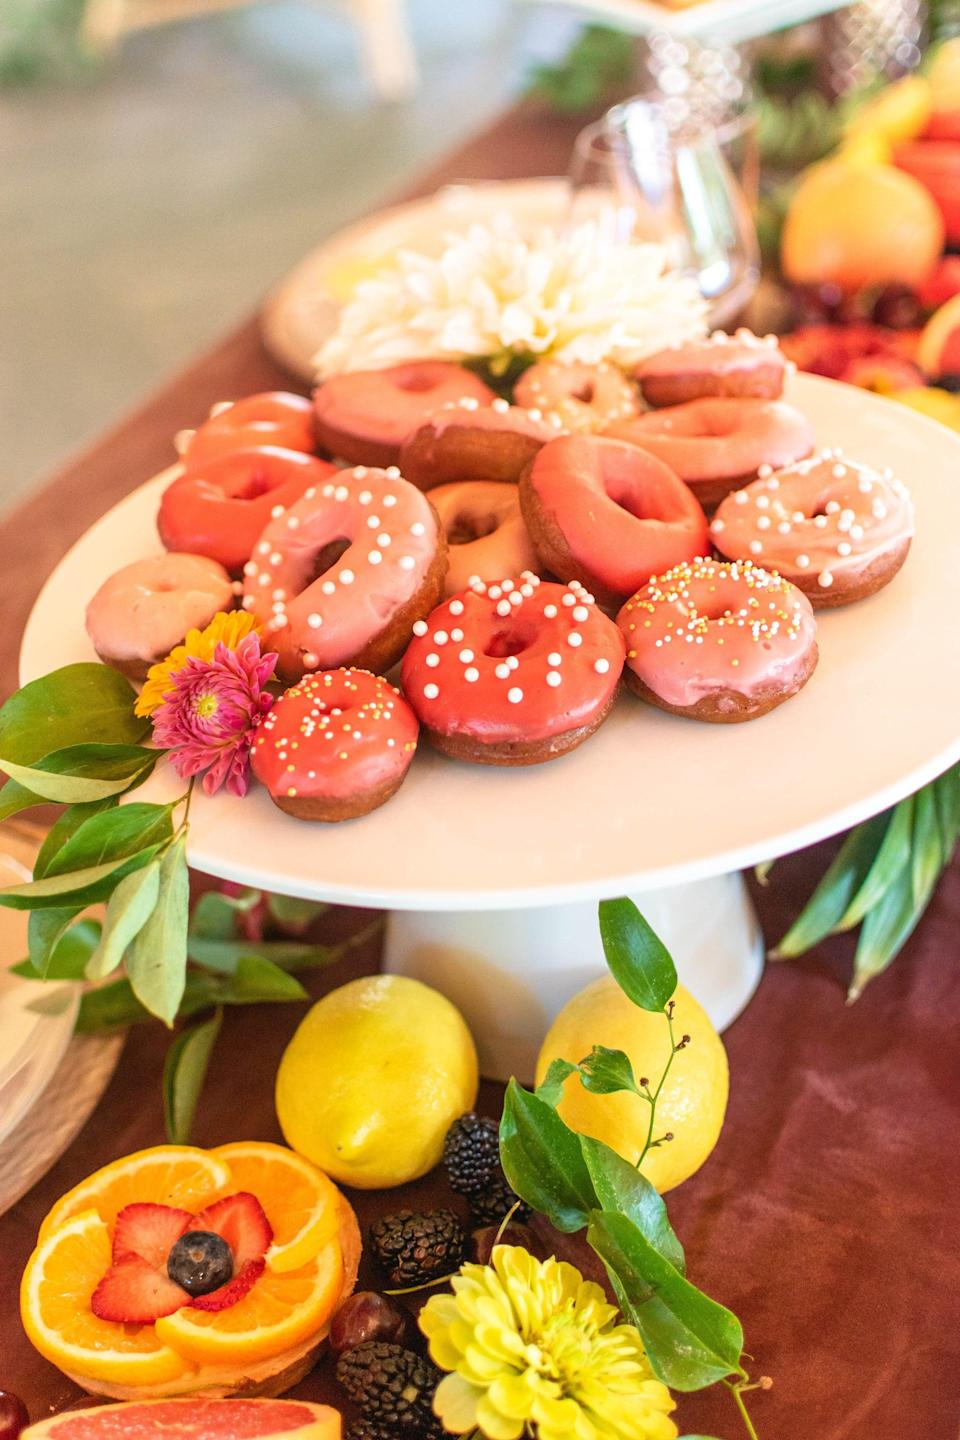 <p>Tell us, is there anything better than brunch? If you host a bridal shower in the morning, all you need is a beautiful breakfast spread (doughnuts and bagels, of course!), mimosas, and tea or coffee. This celebration will feel intimate and relaxing, giving the bride-to-be time to enjoy those closest to her.</p>